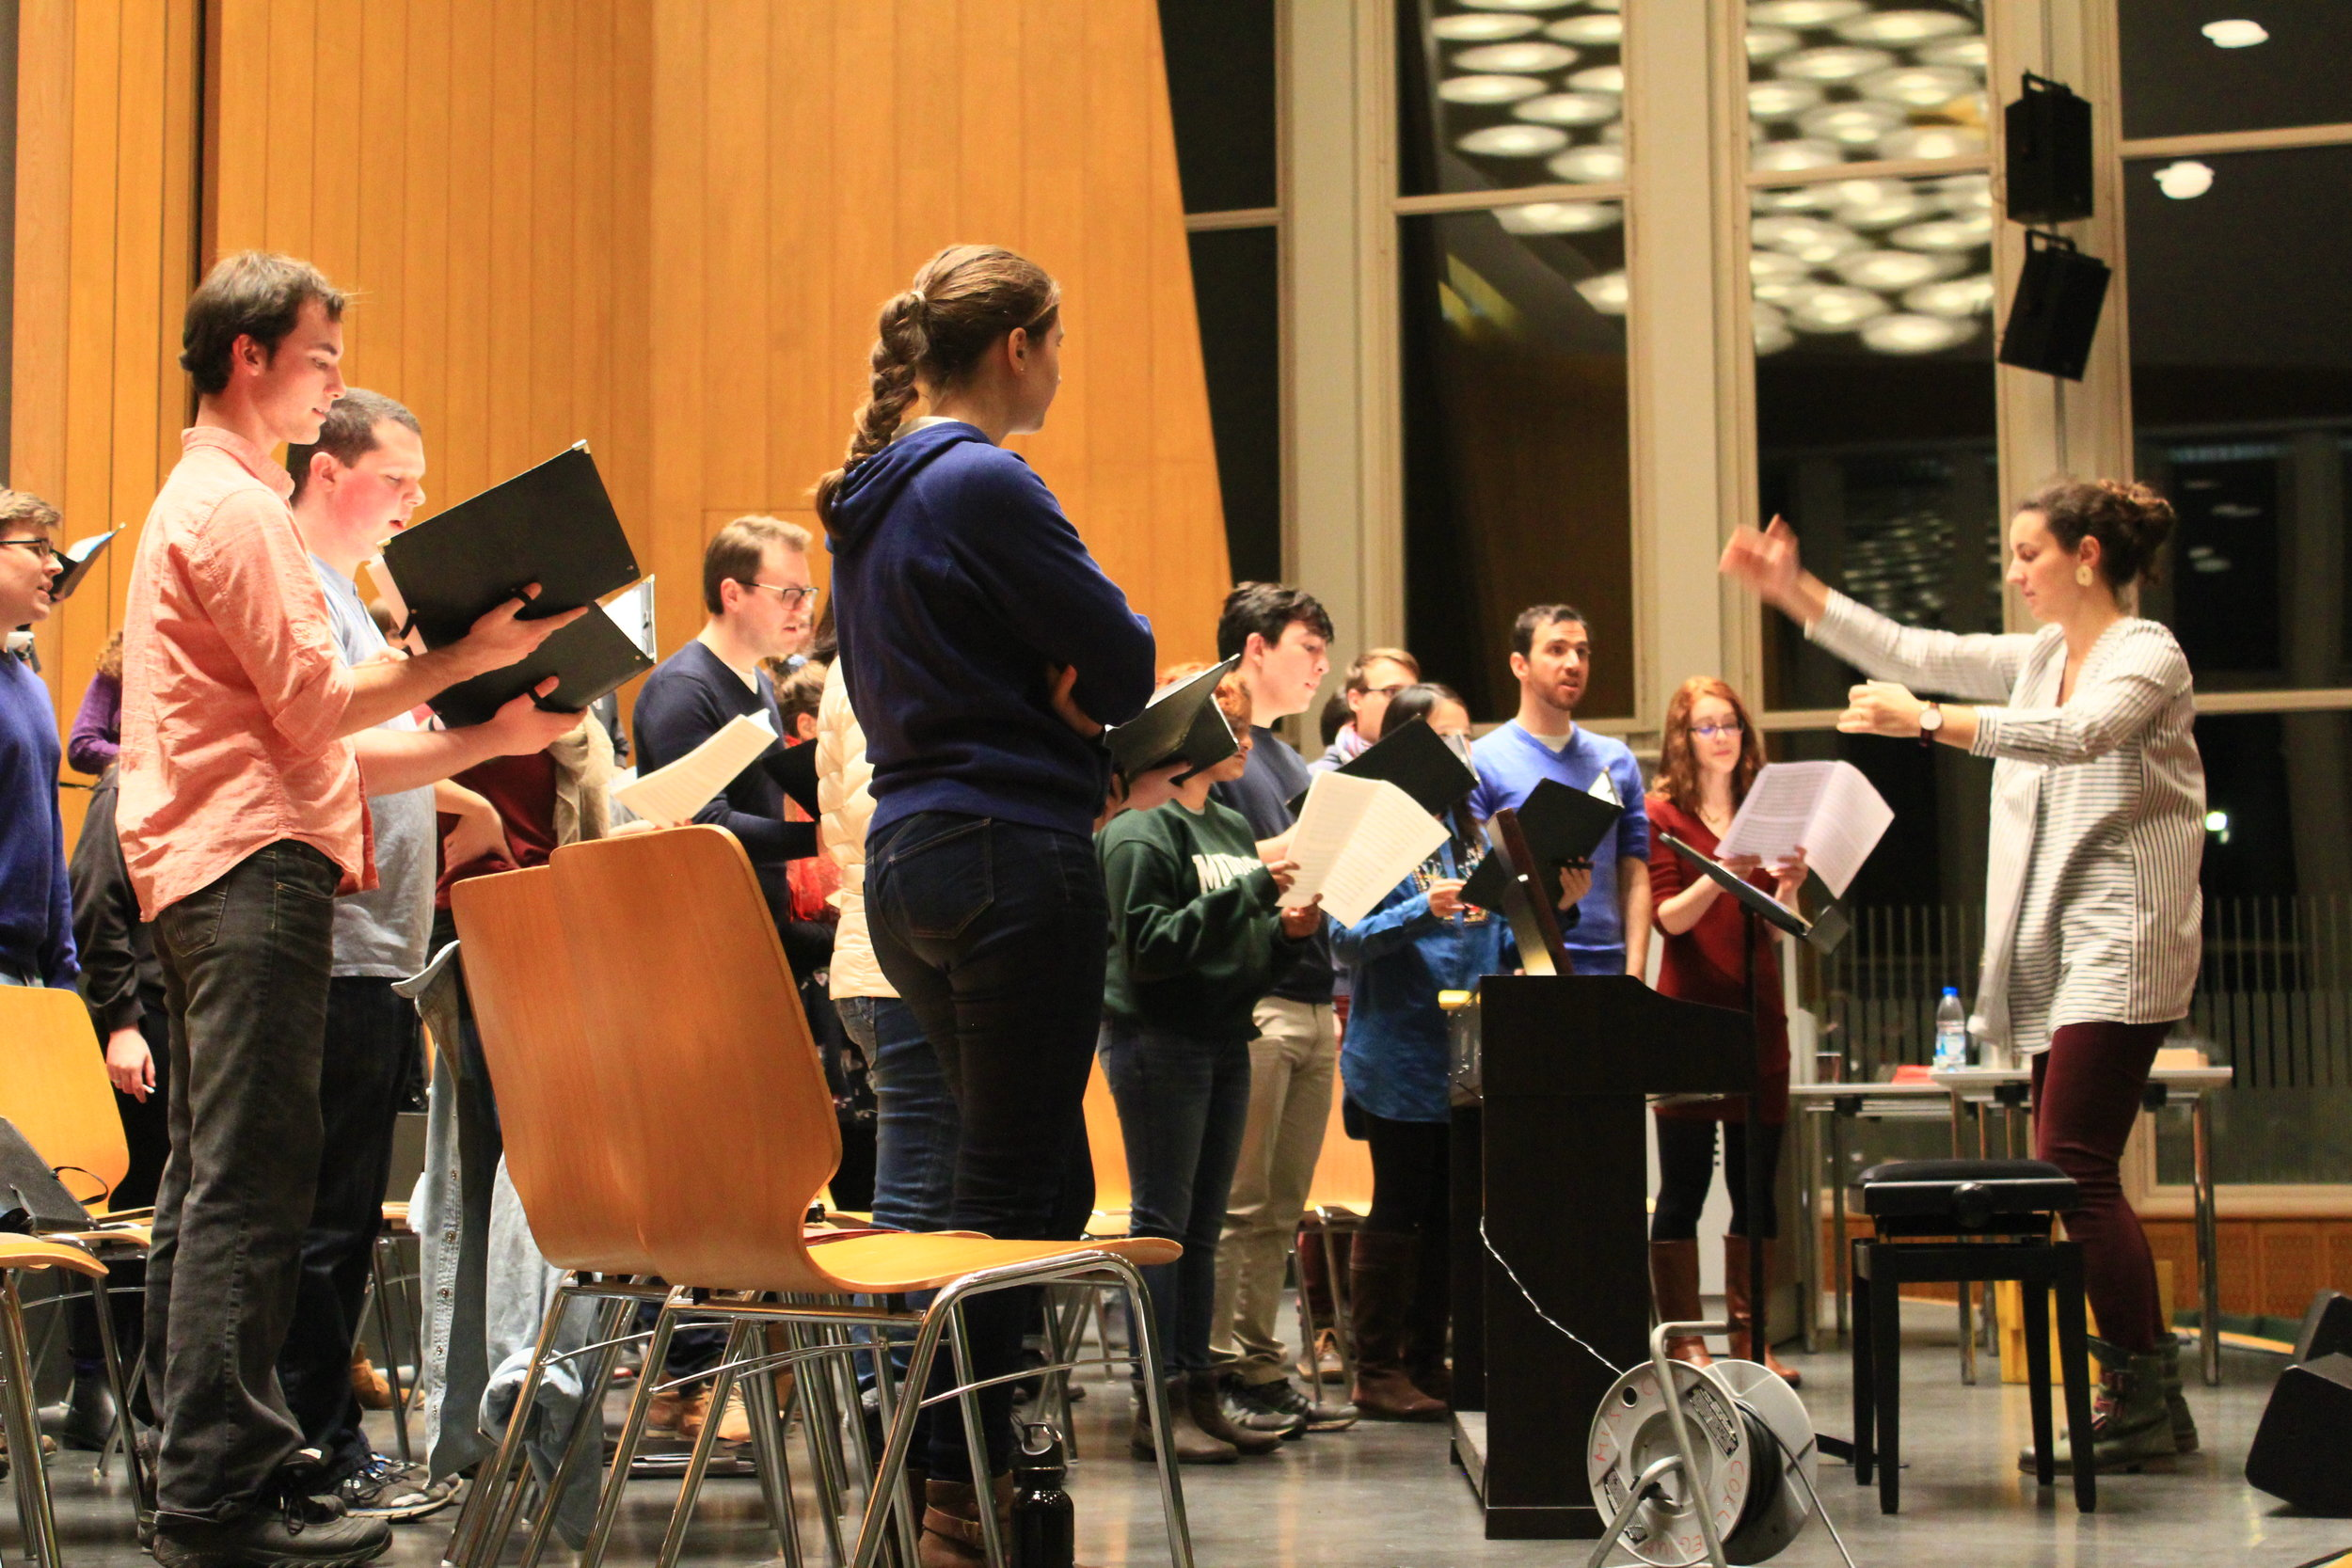 In rehearsal with Donka Miteva and the Kammerchor Collegium Musicum Berlin